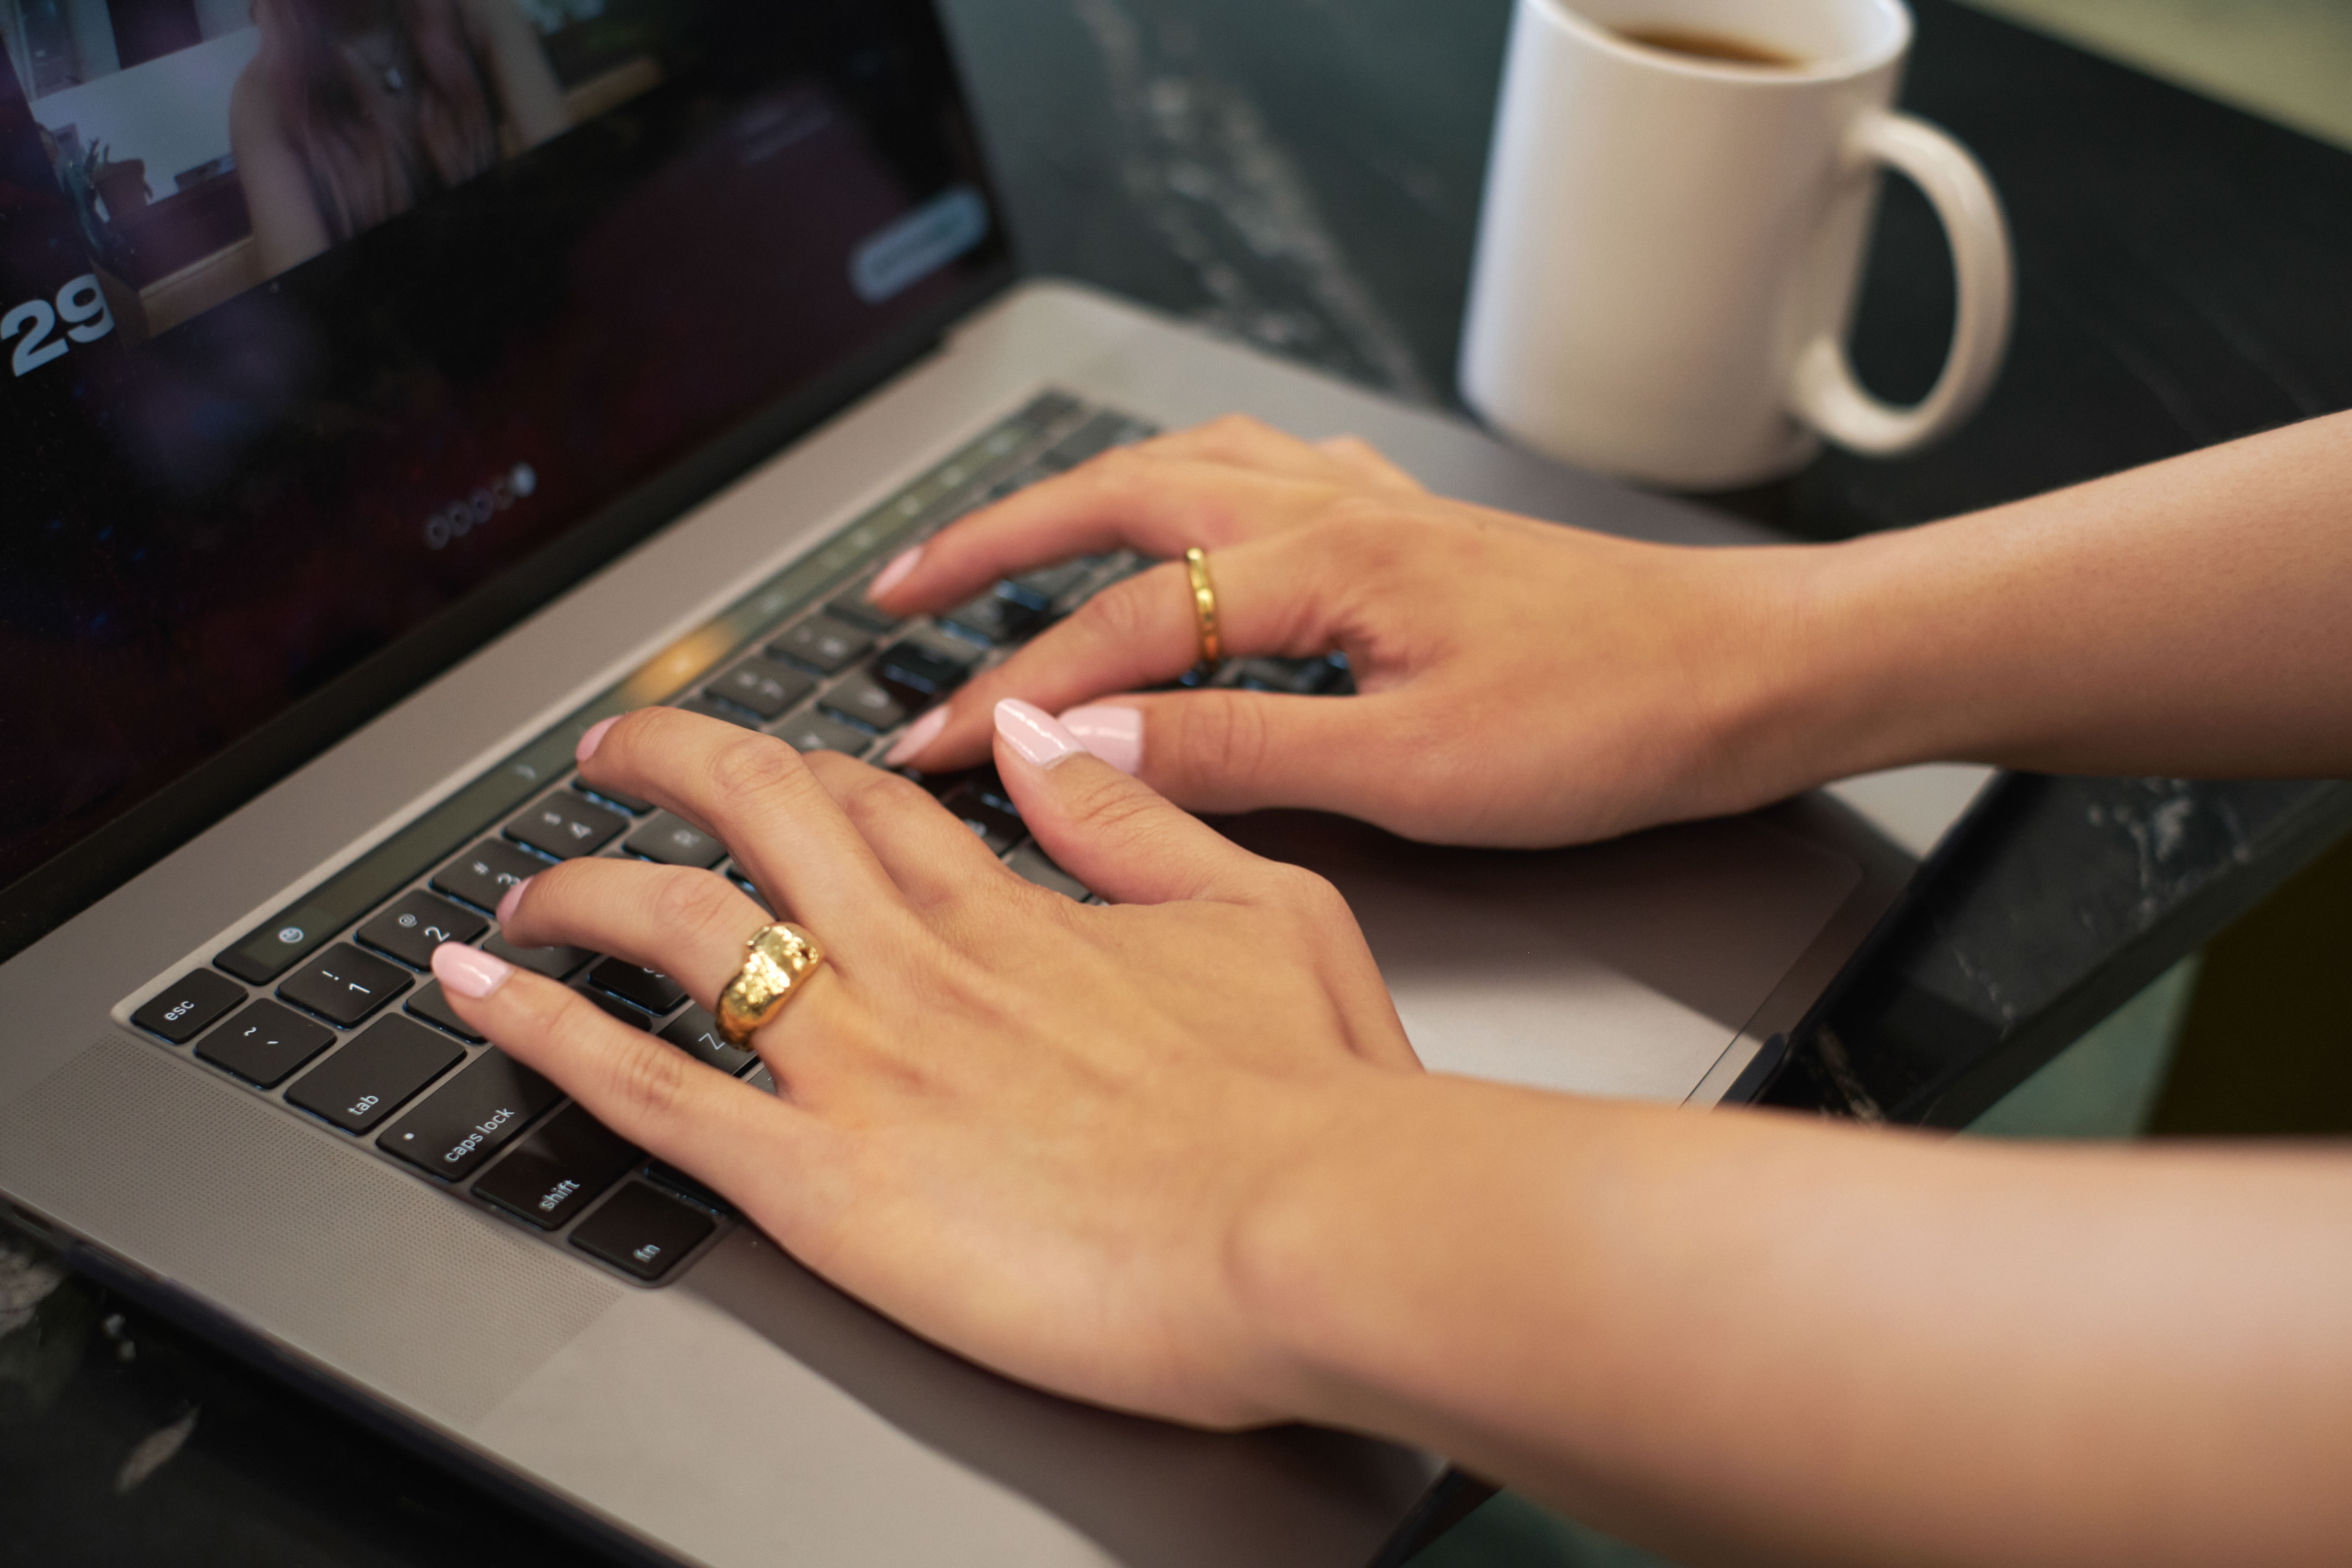 Close-up of a transfeminine person using a keyboard